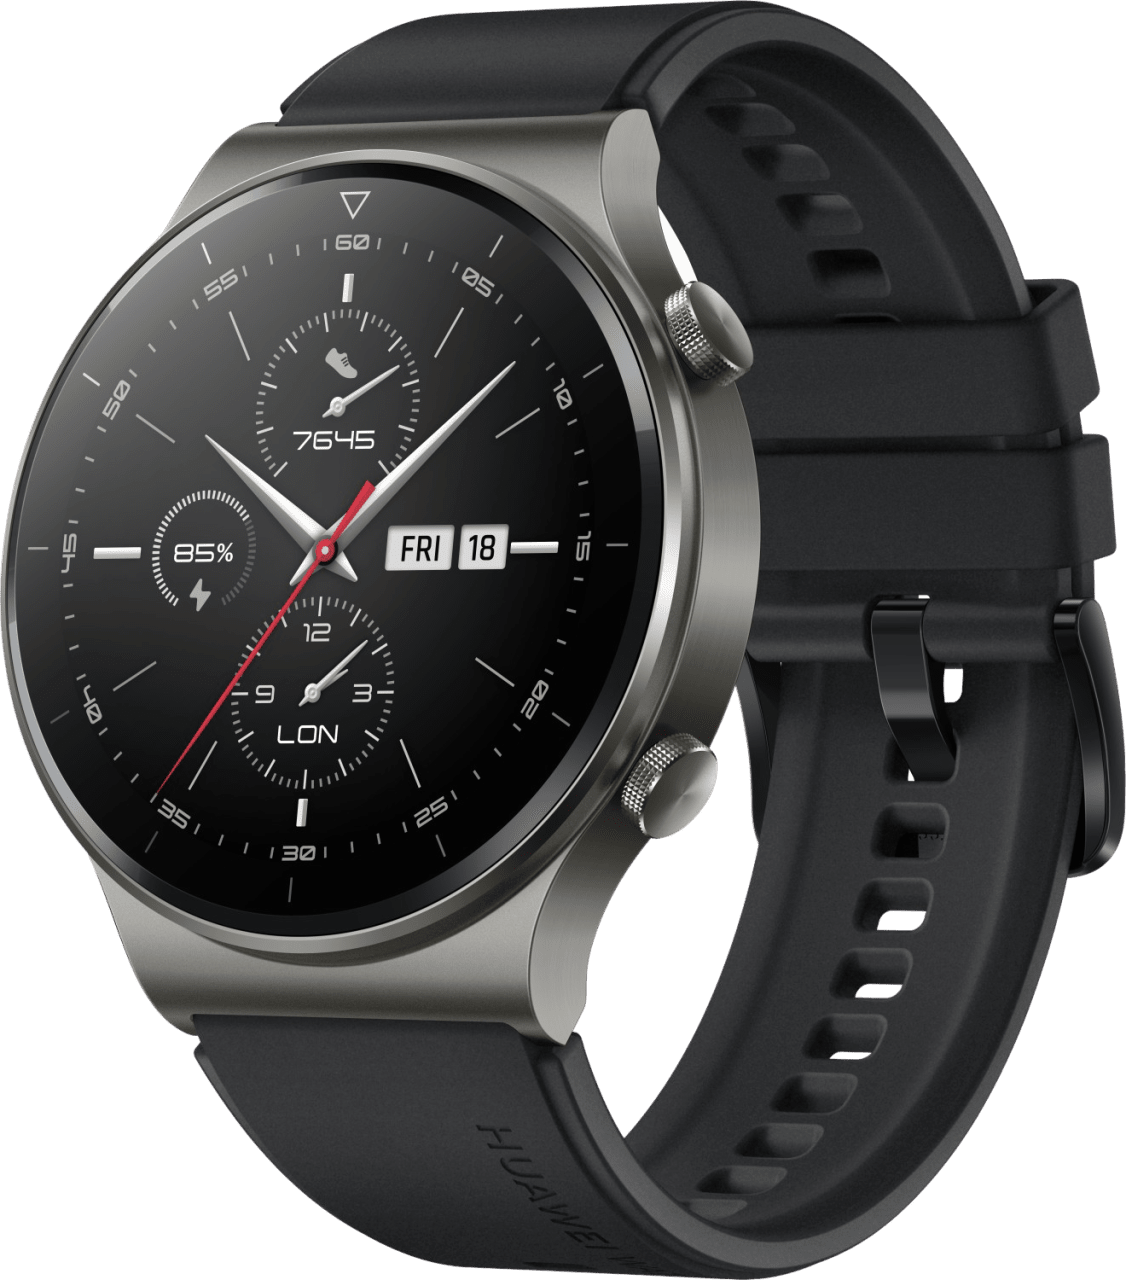 Black Huawei Watch GT2 Pro, 46mm Titanium case, Silicone / Leather band.1